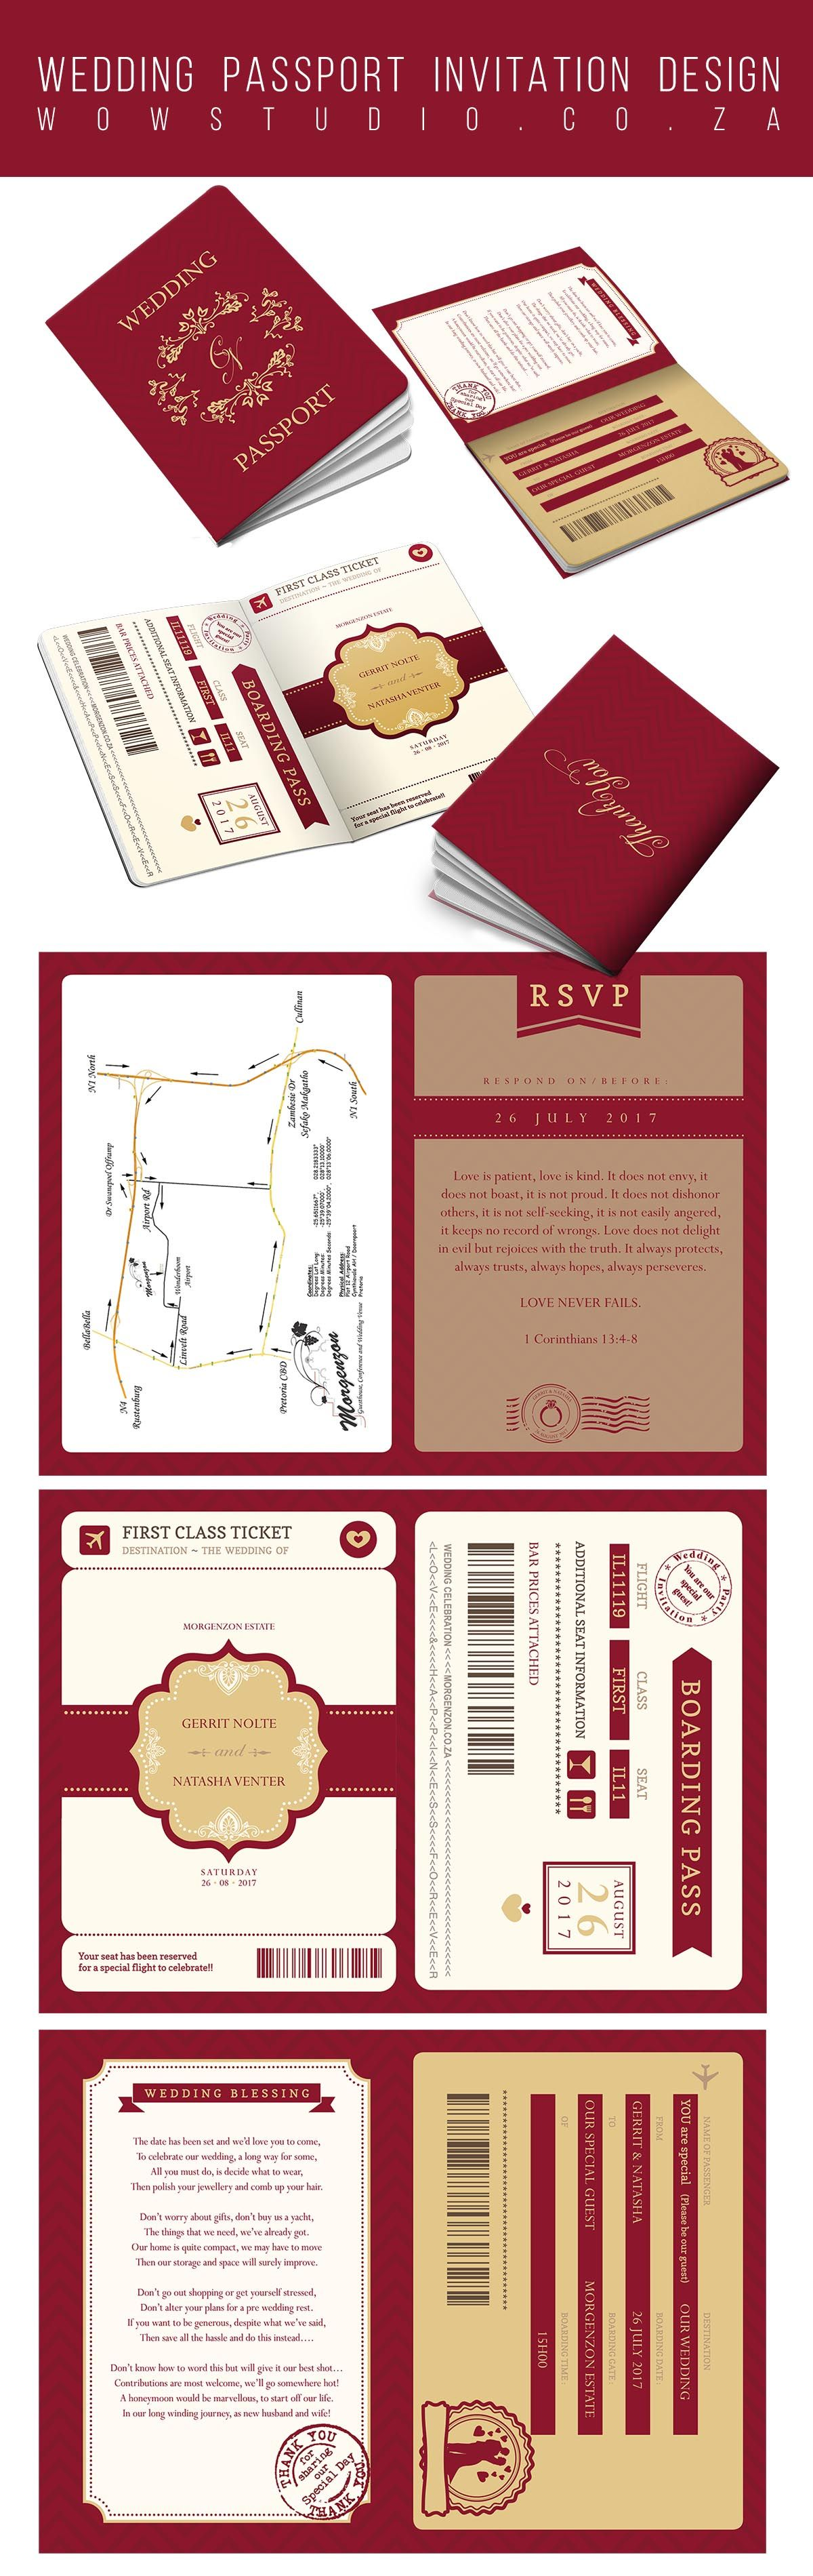 Fancy Wedding Email Invitations Composition - Invitations and ...